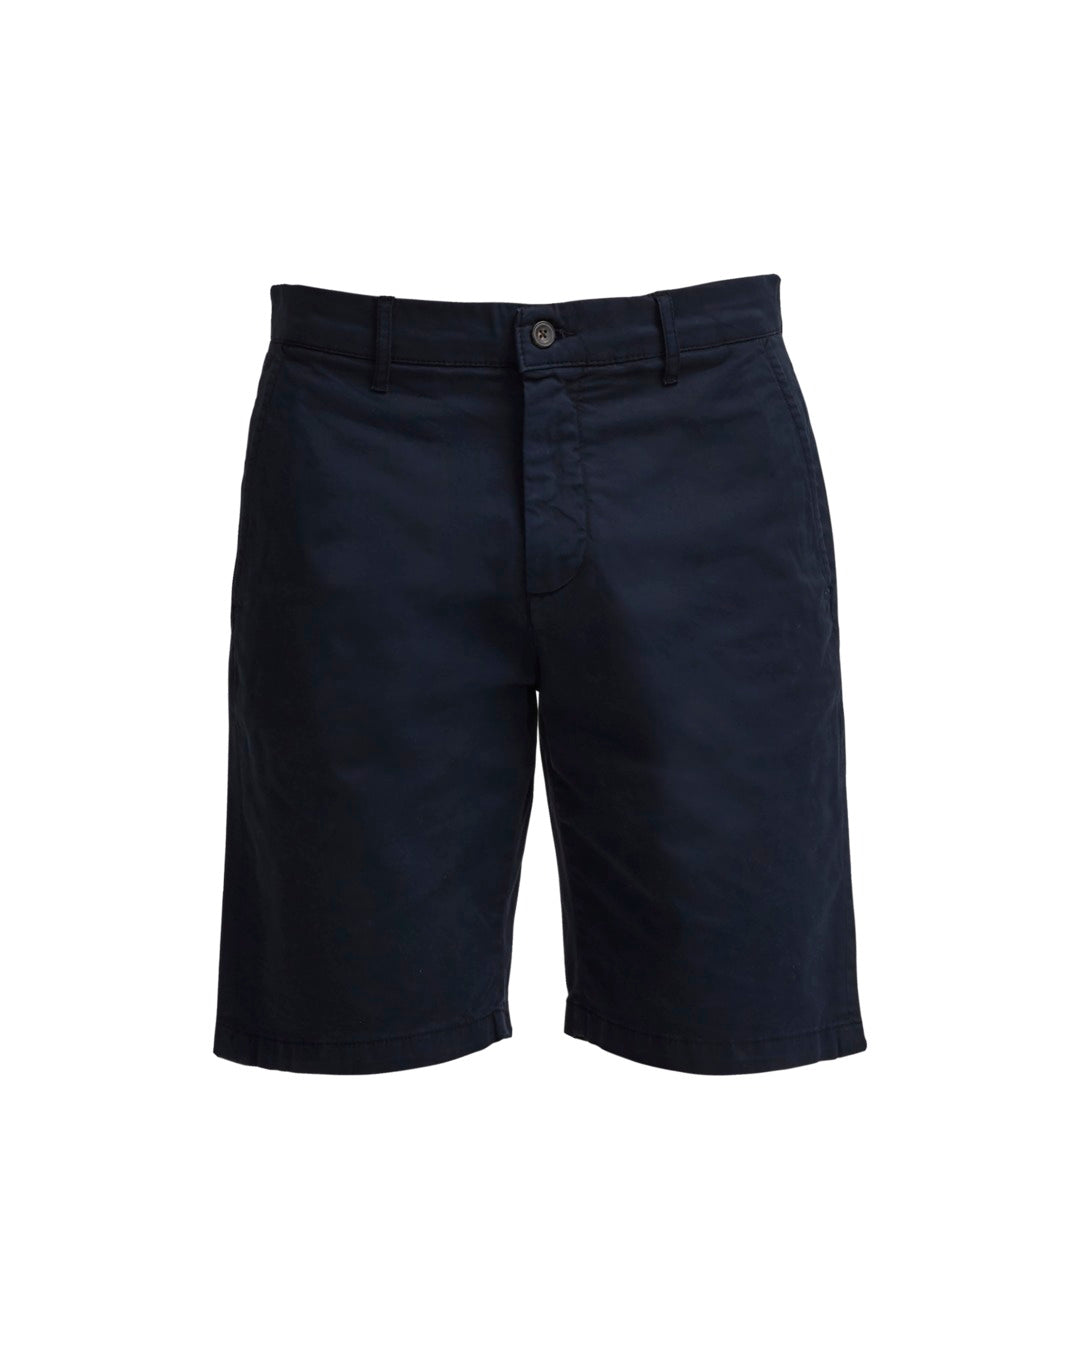 No Nationality Crown Shorts - Navy Blue